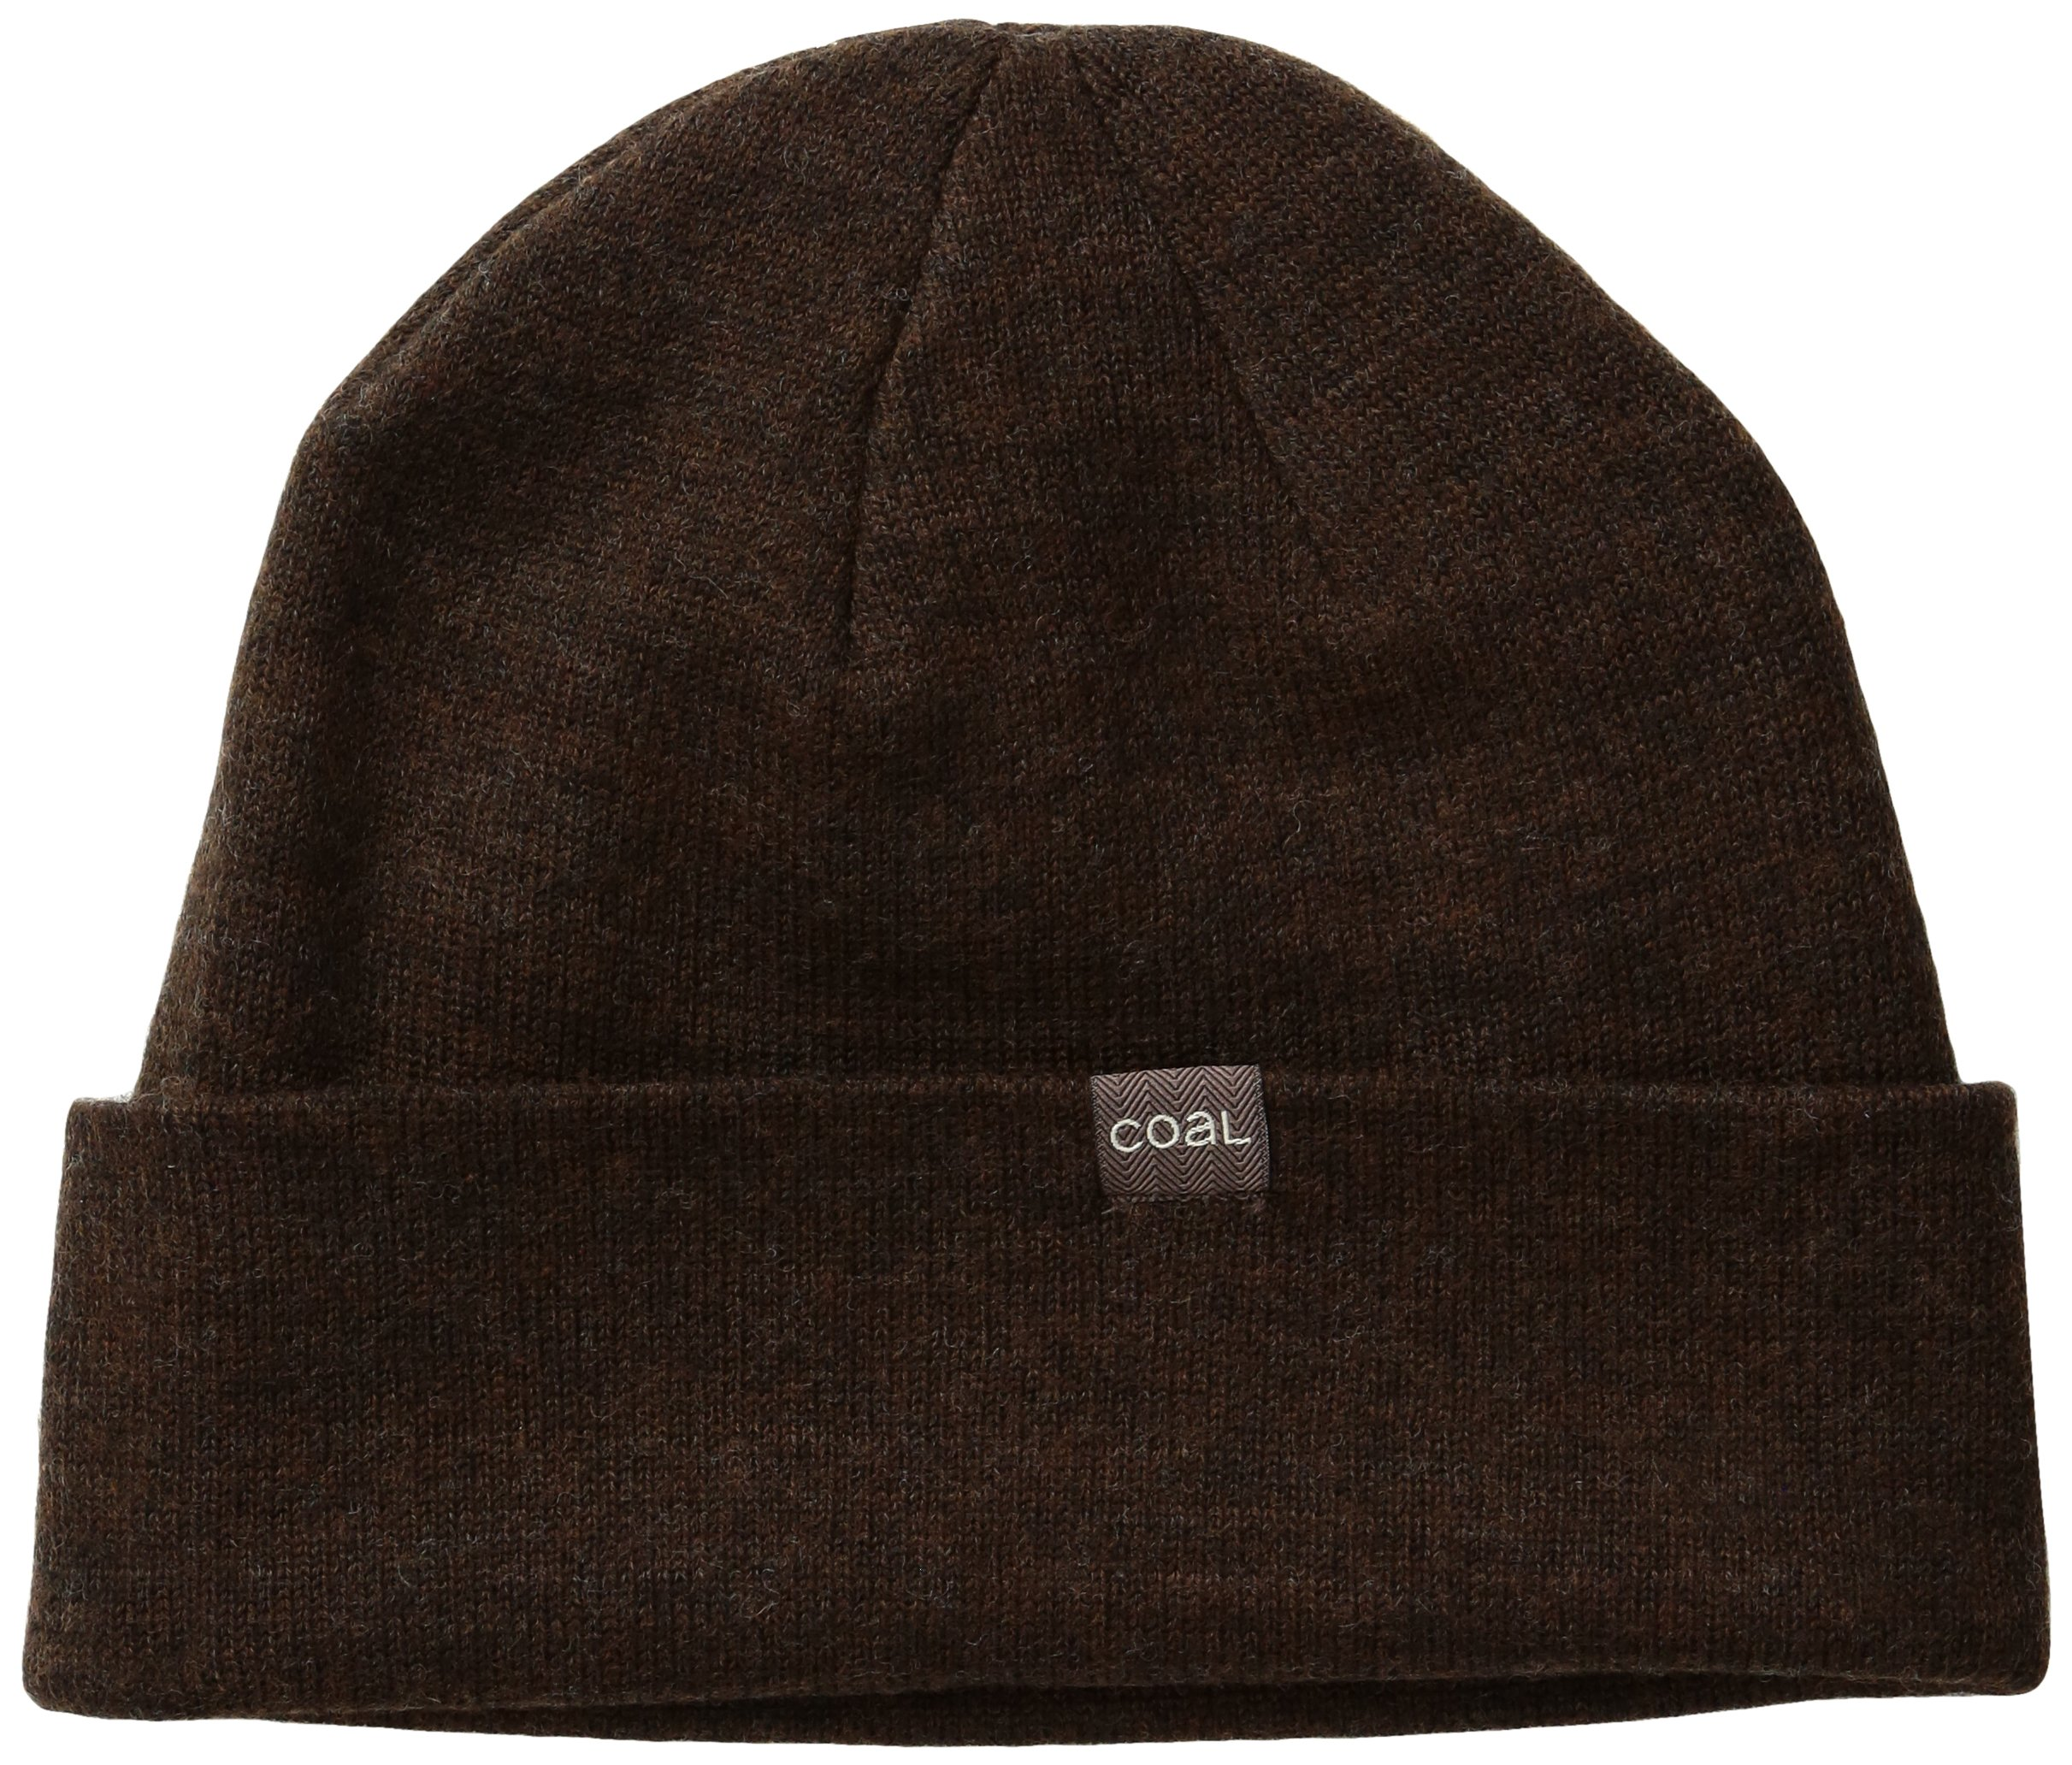 Coal Men's The Mesa Ultra Fine Knit Merino Wool Beanie Hat, Brown, One Size